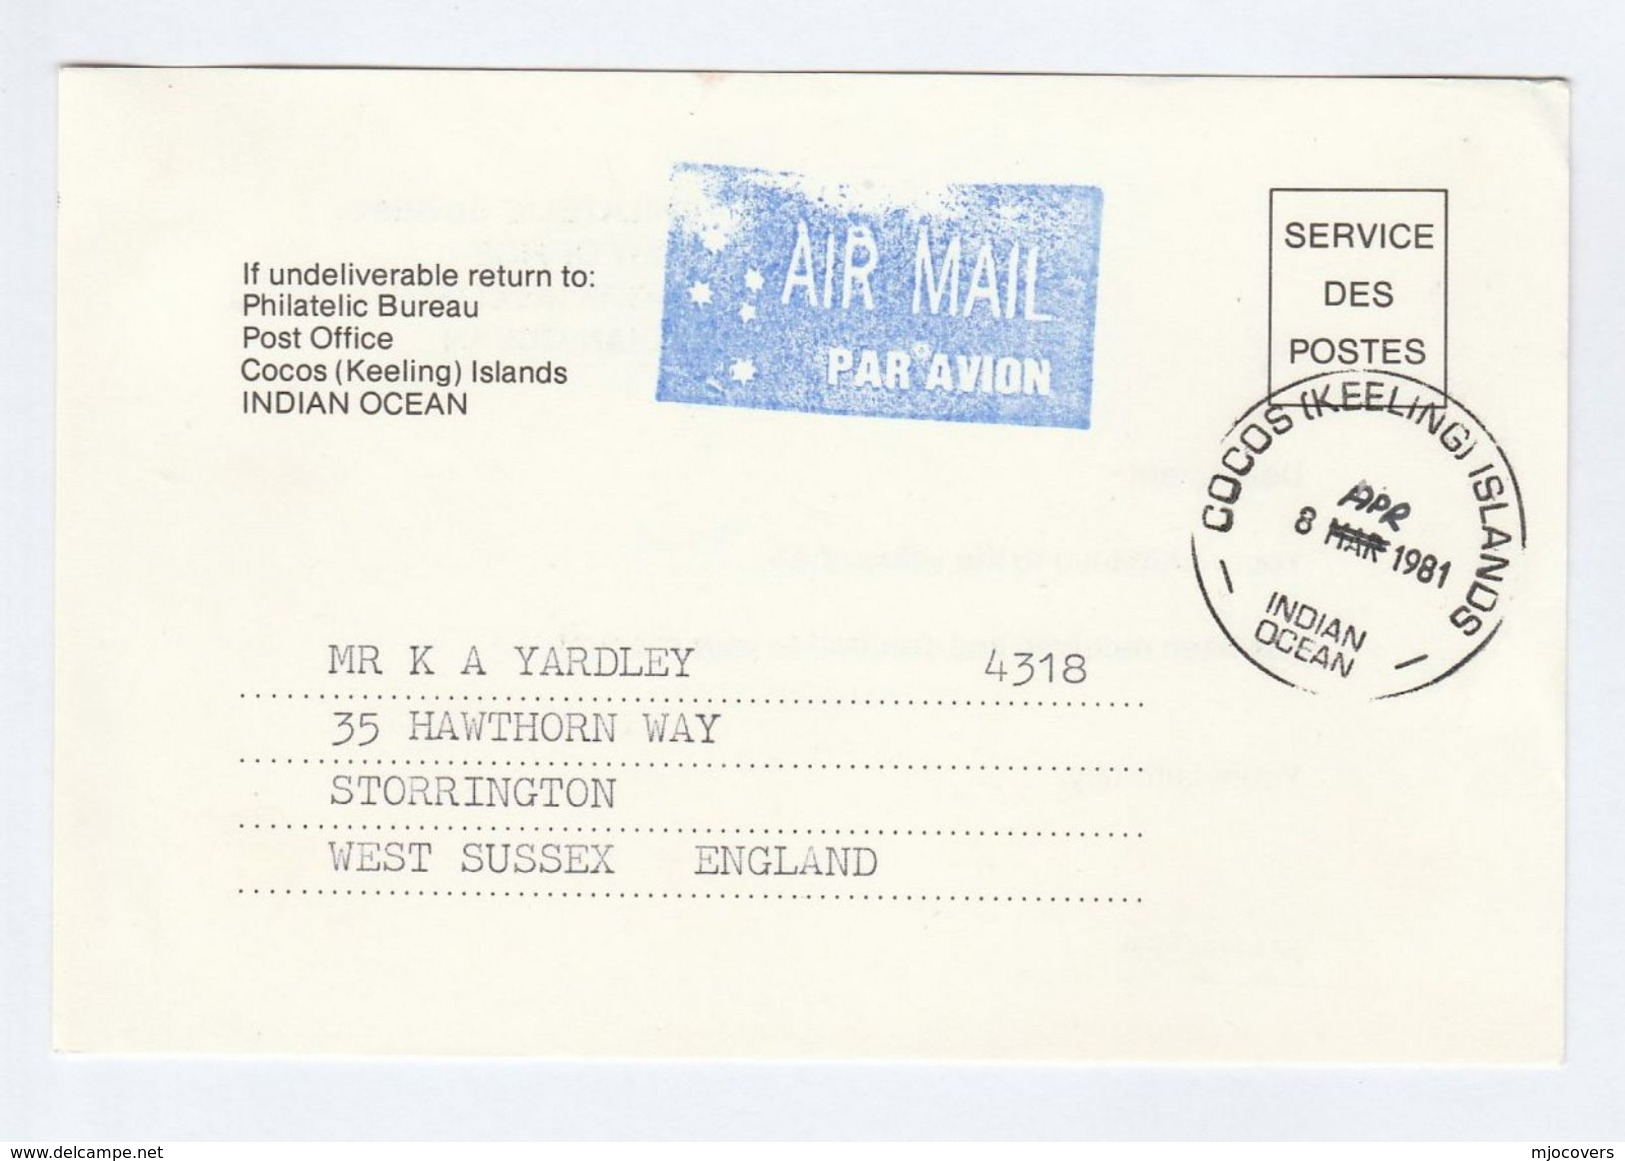 1981 COCOS KEELING Islands SERVICE DES POSTES Postal STATIONERY CARD To GB Cover Stamps - Cocos (Keeling) Islands